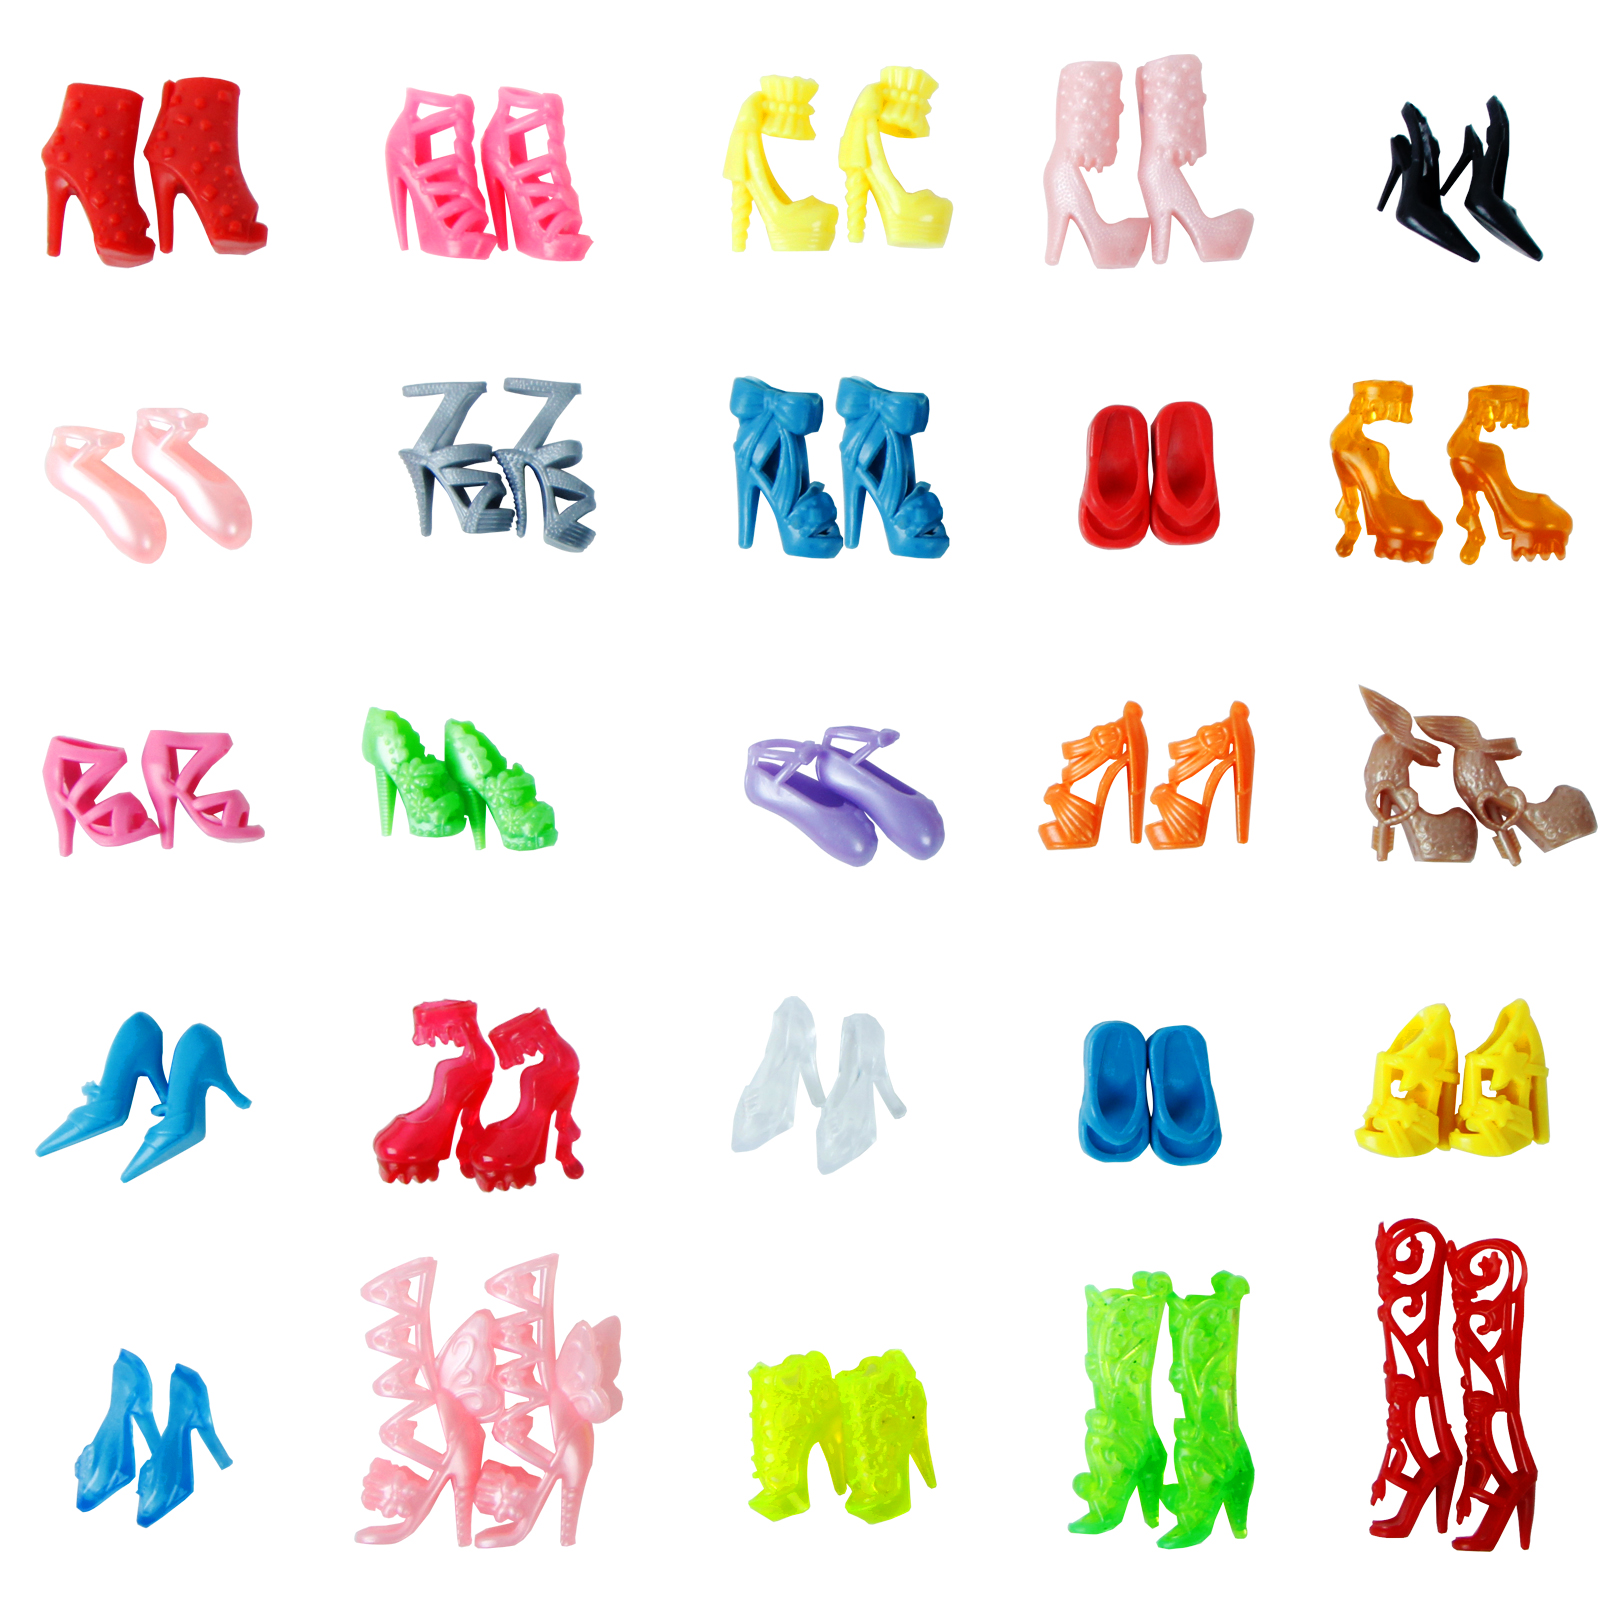 Random 10 Pairs Fashion Colorful Shoes High Heels Sandals Dress Clothes Accessories For Barbie Doll Boy Girl Toys Free Shipping